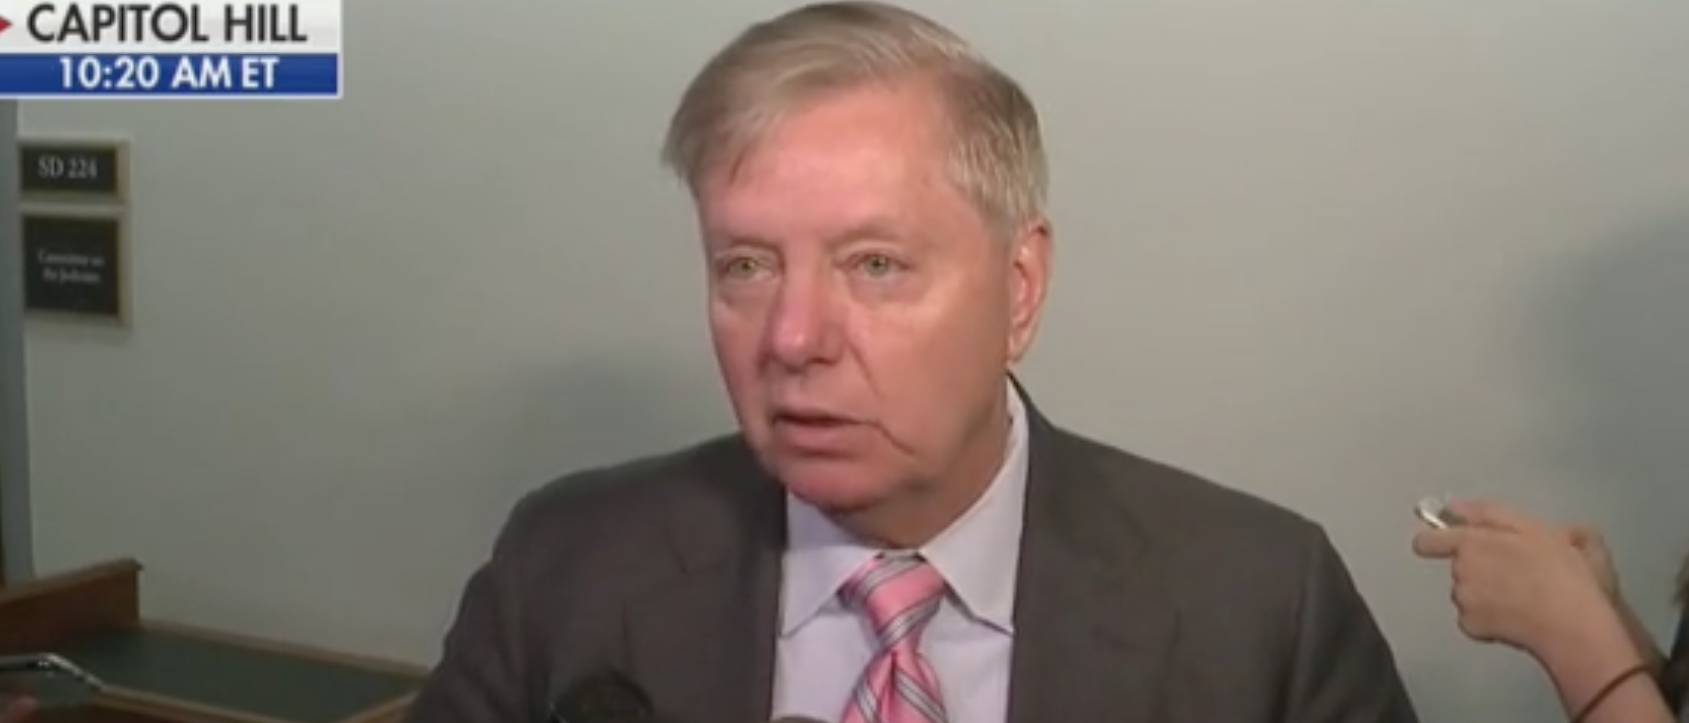 Lindsey Graham Explains Why He's Not Playing Along With Impeachment Process